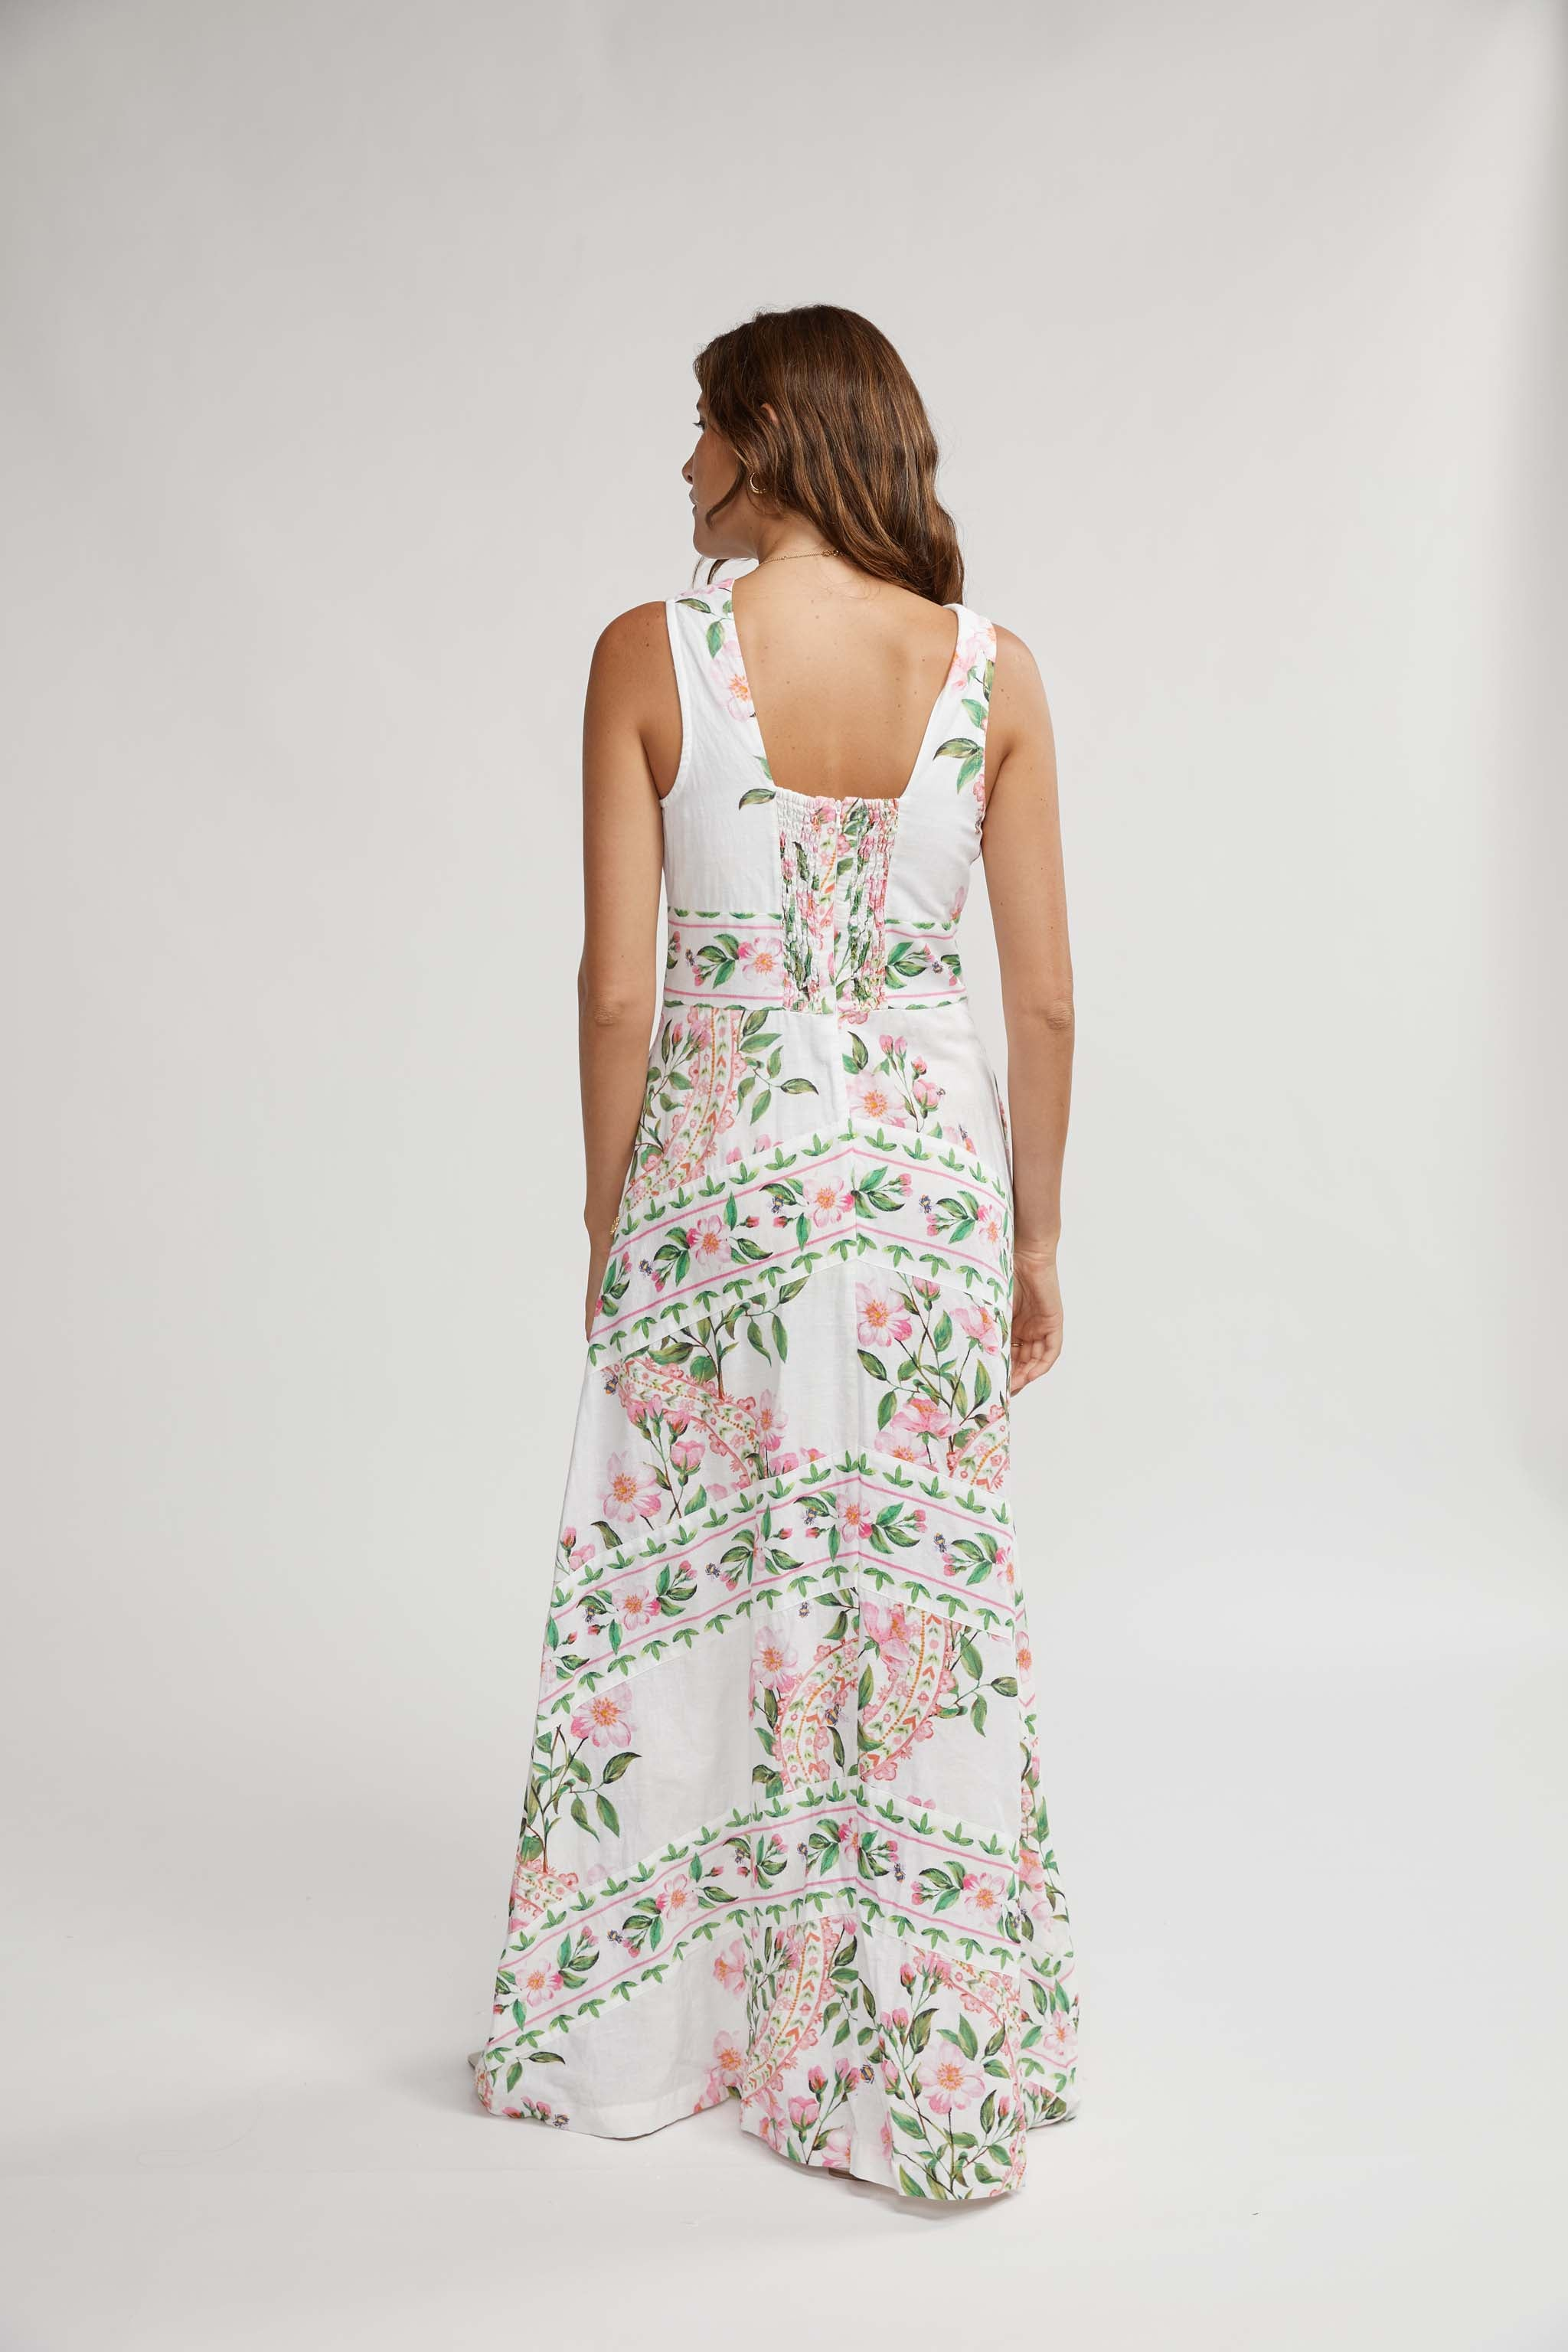 PORTMEIRION MAXI DRESS